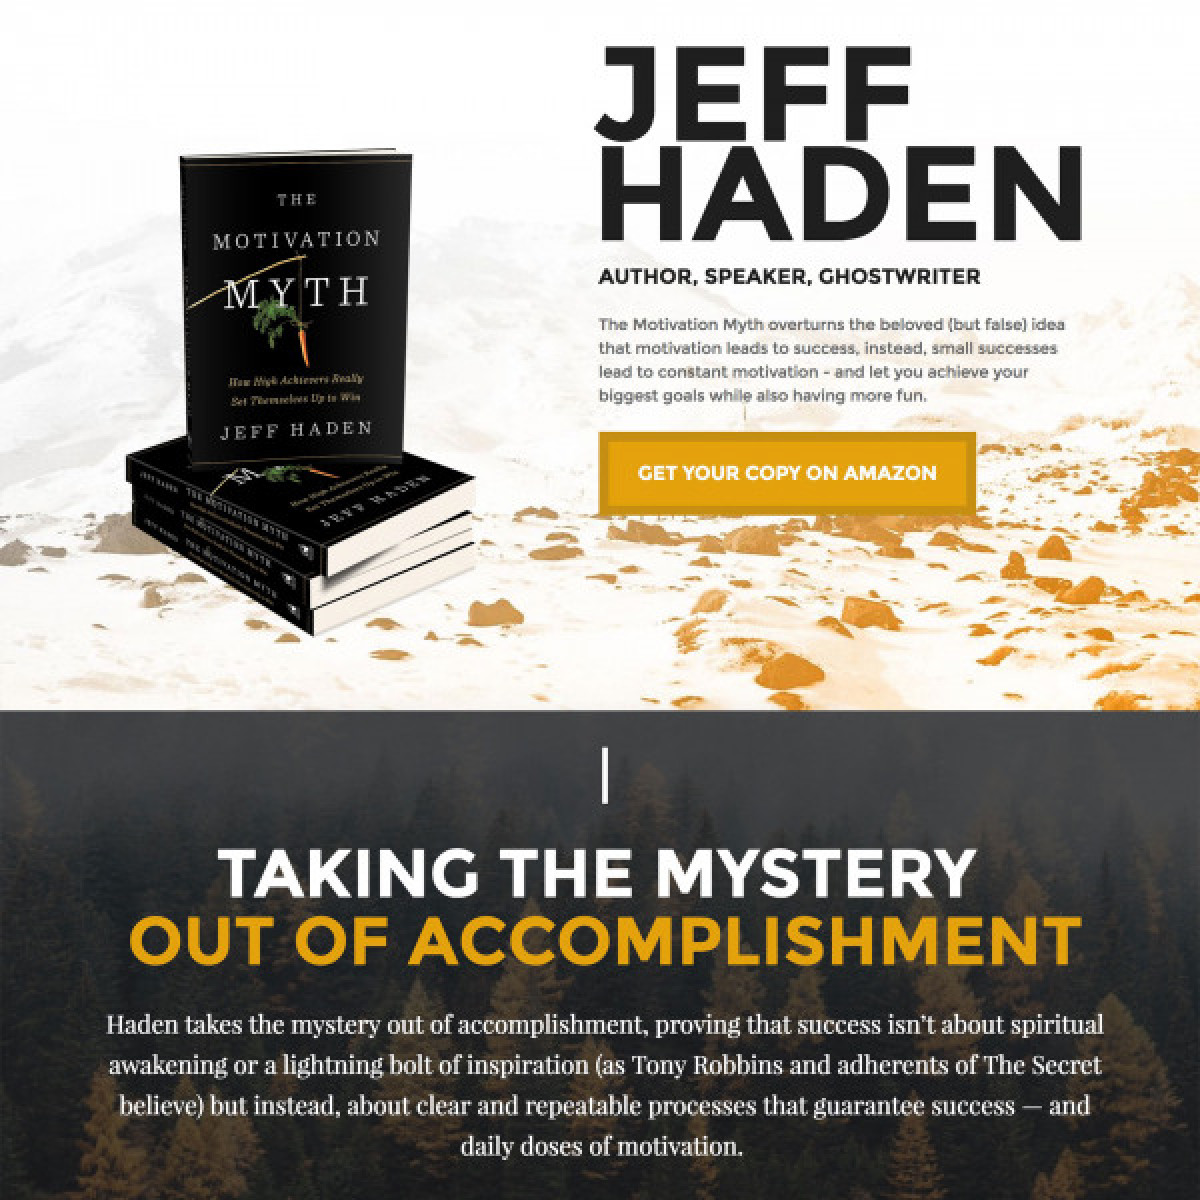 Image of website for Jeff Haden